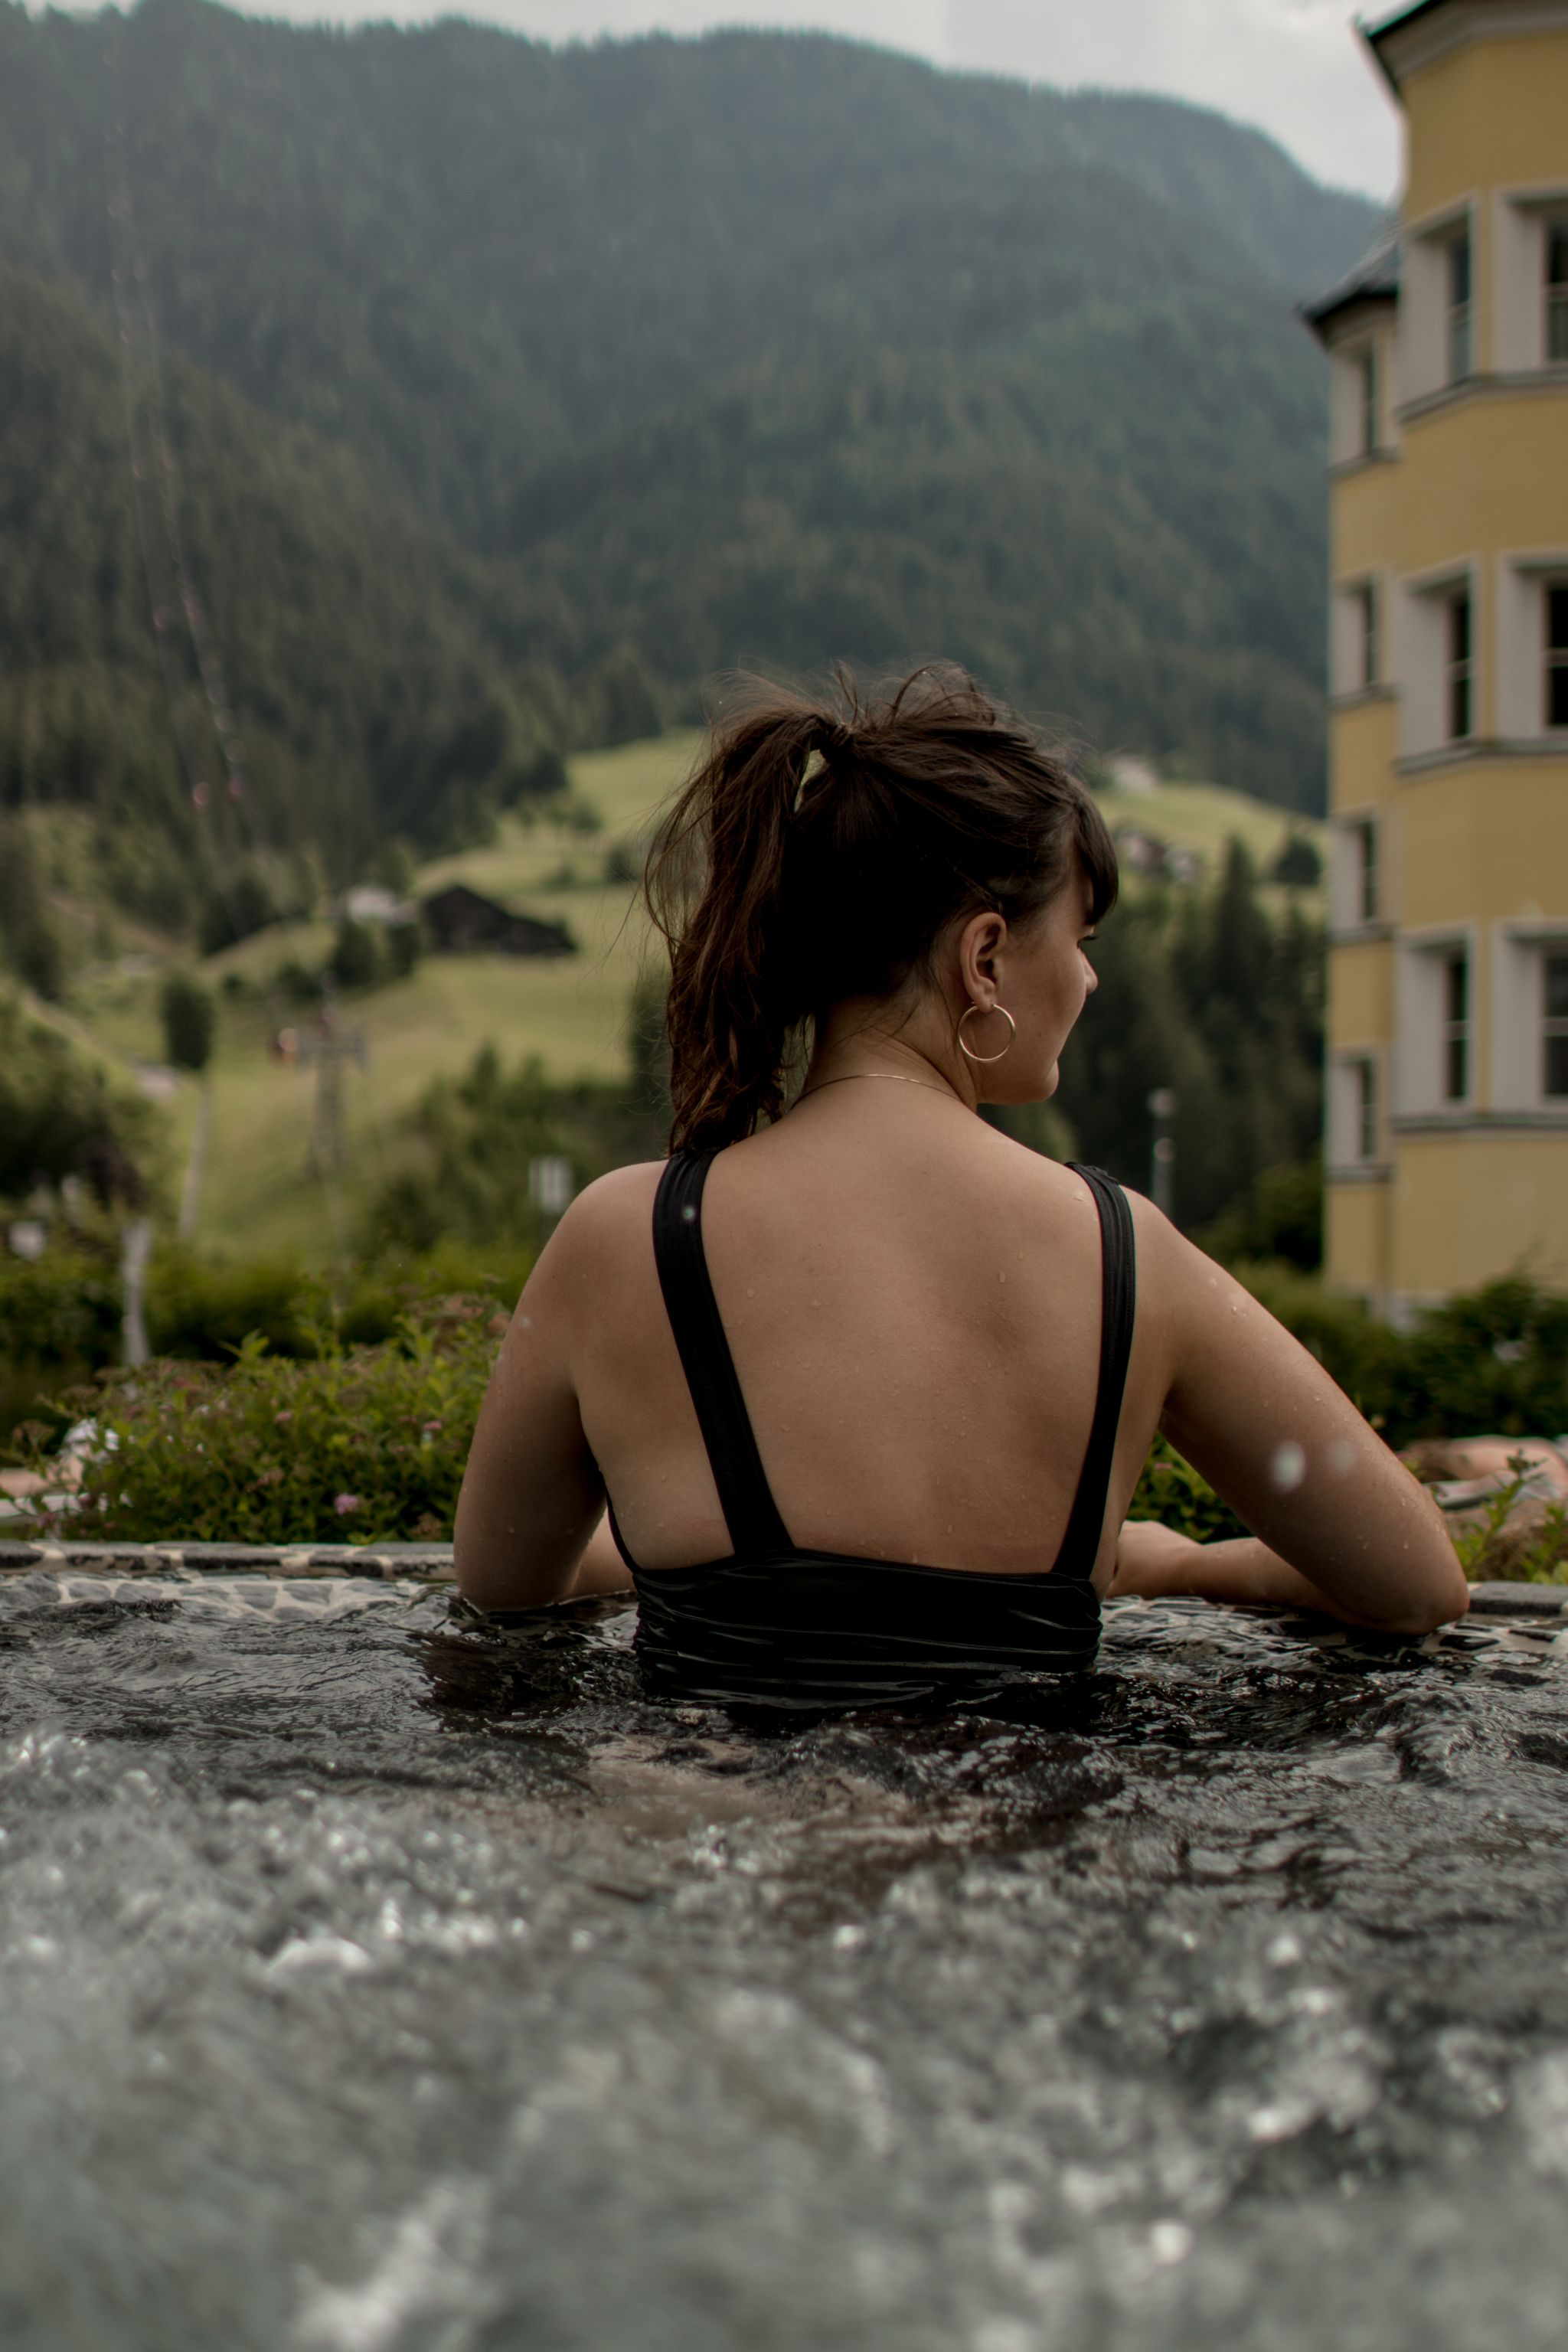 Adler Dolomites Hotel Ortisei Italy Hotel Review Spa Outdoor Hot Tub View_